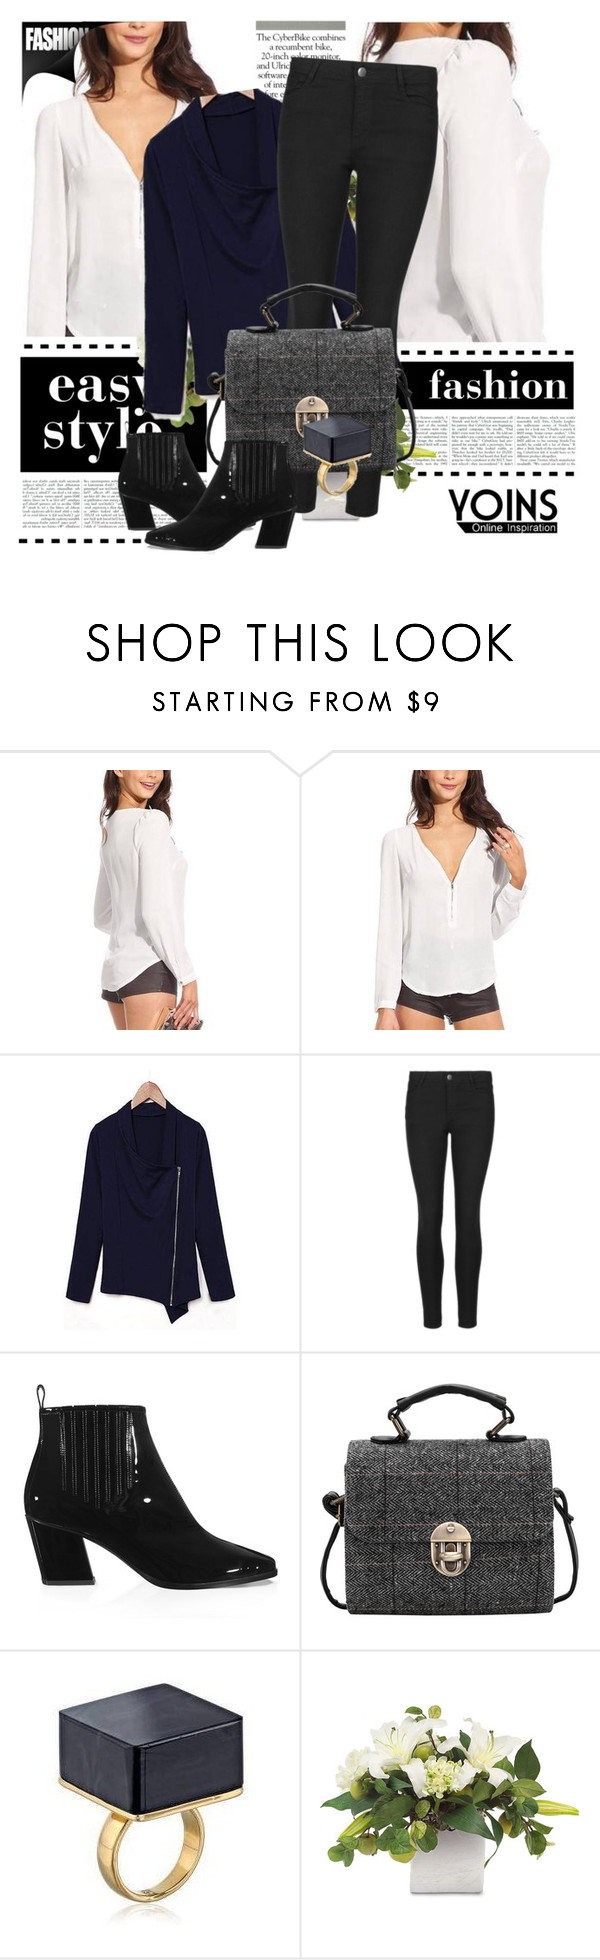 """""""Yoins III/5"""" by angel-a-m ❤ liked on Polyvore featuring Roger Vivier and yoins"""